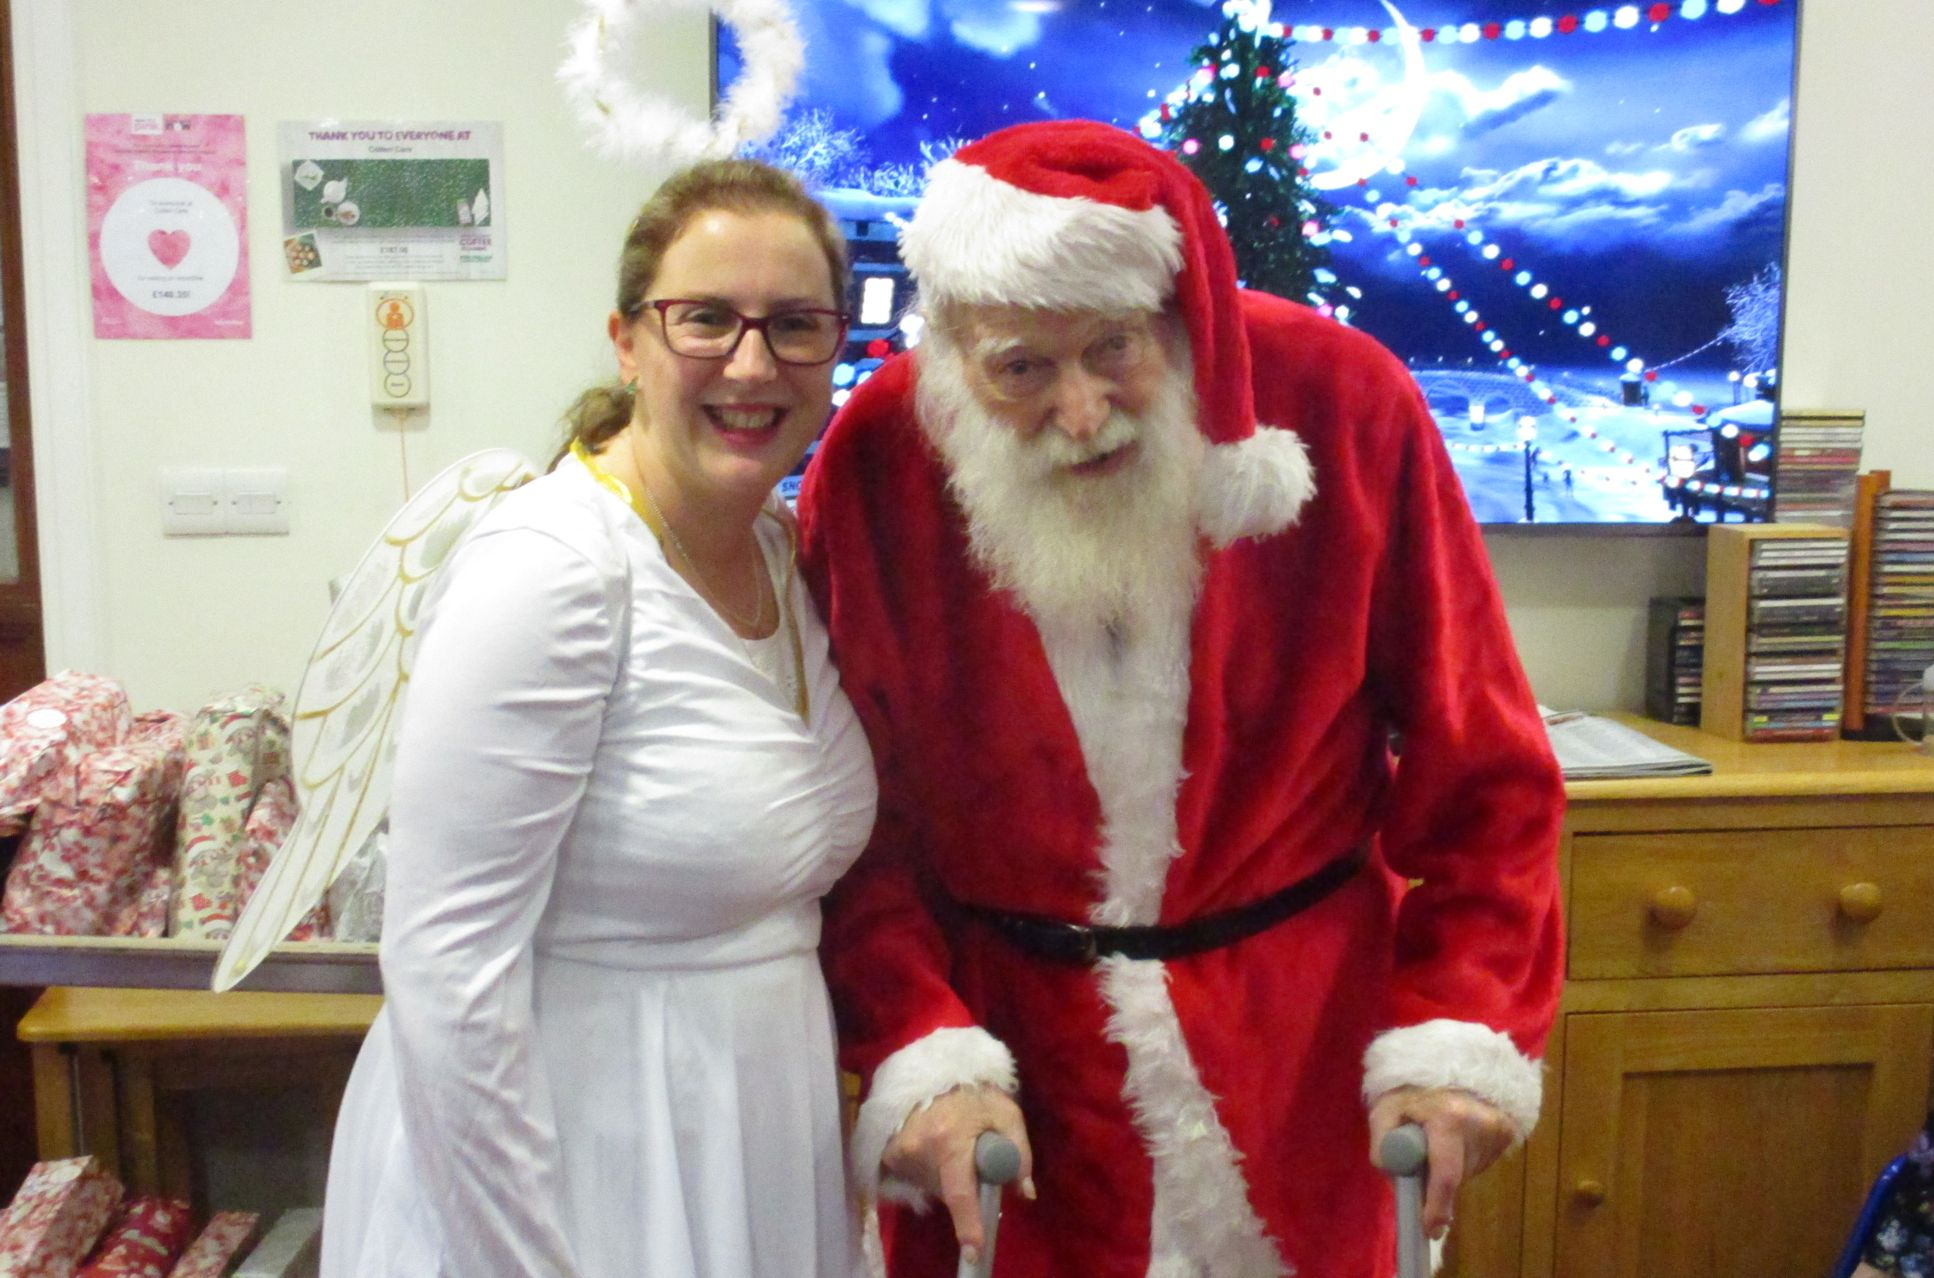 father christmas comes to visit2018 AC